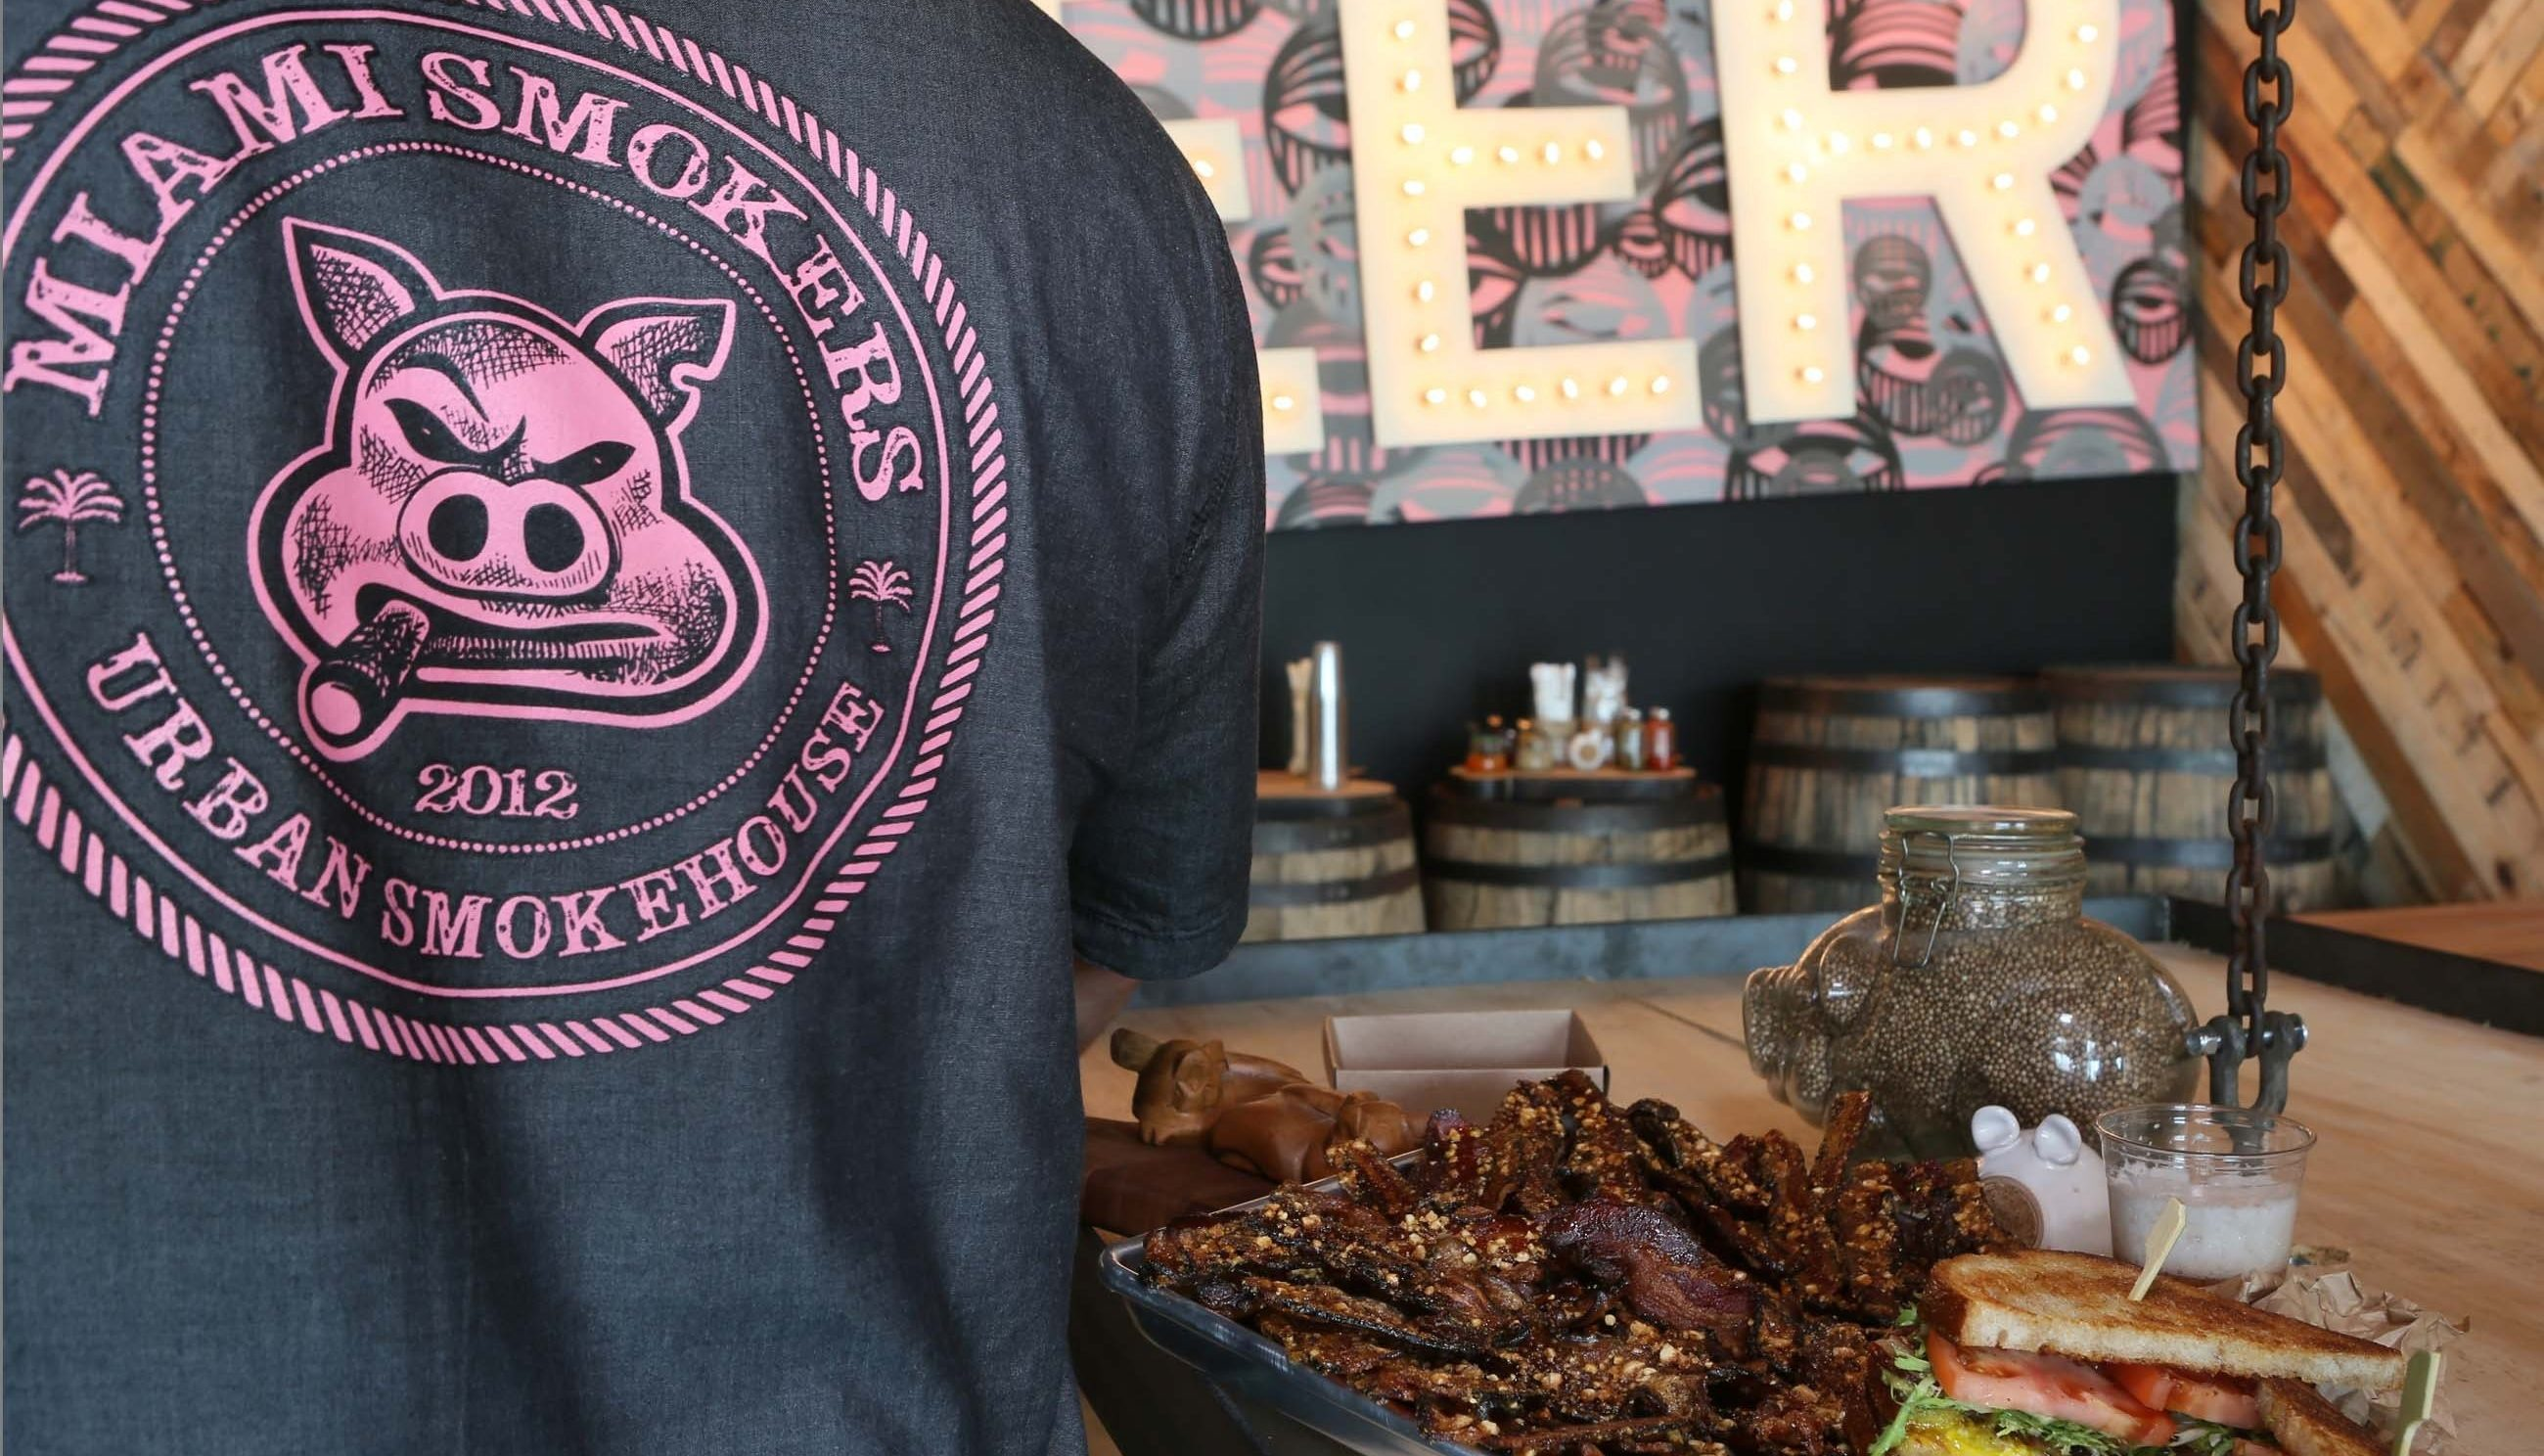 Miami Smokers Is All About Meat. So Why Are They Competing In A Vegan Cook Off? photo